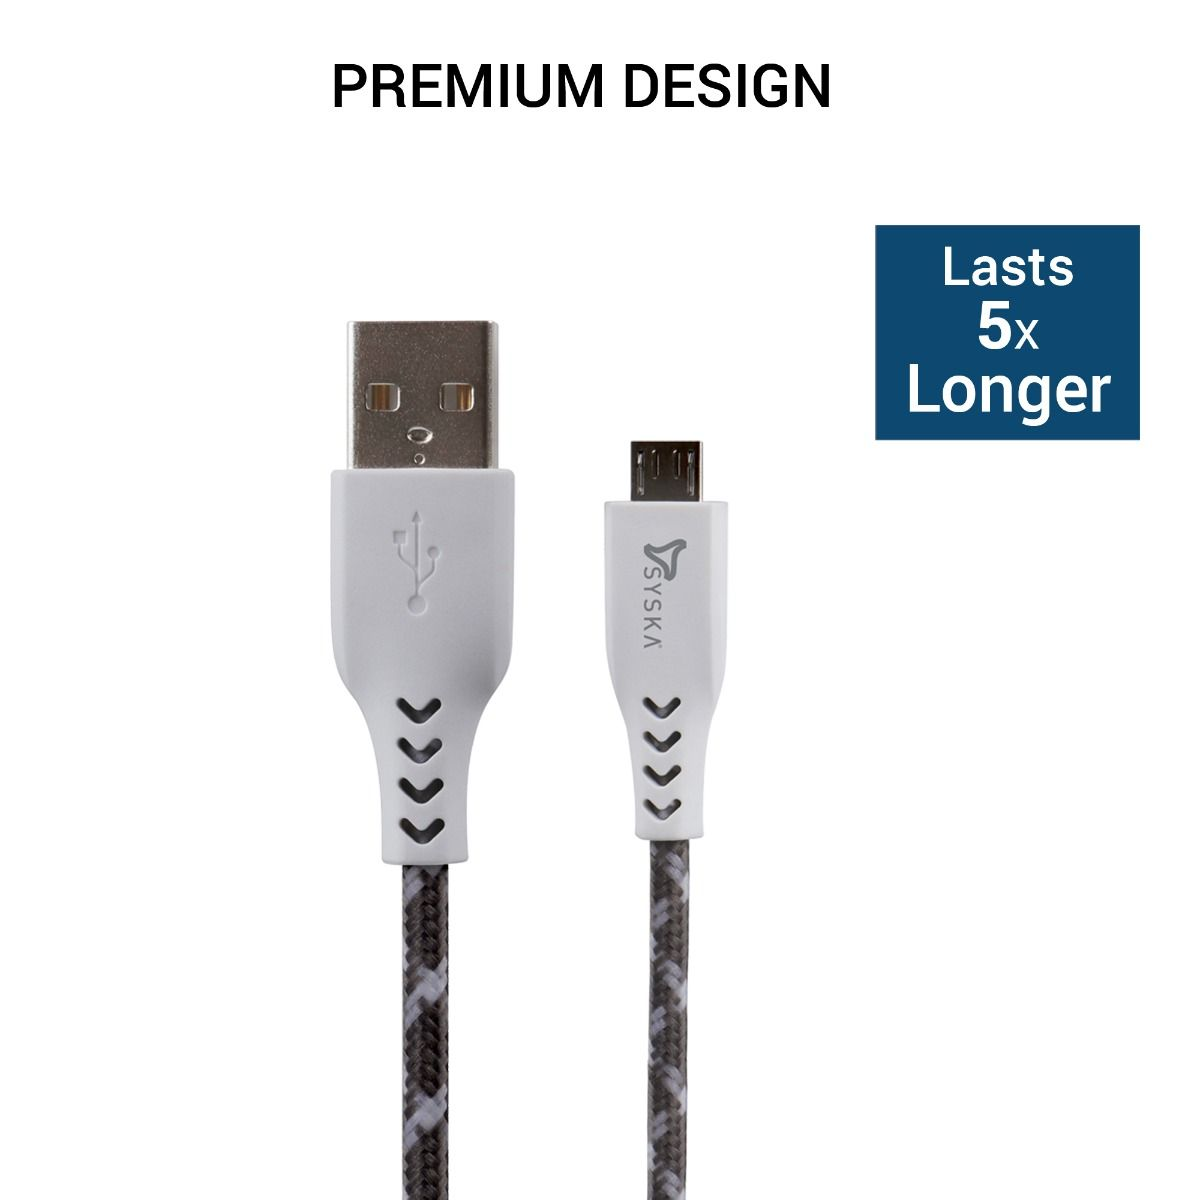 Fastlink Type-C Charging Cable CCCP20